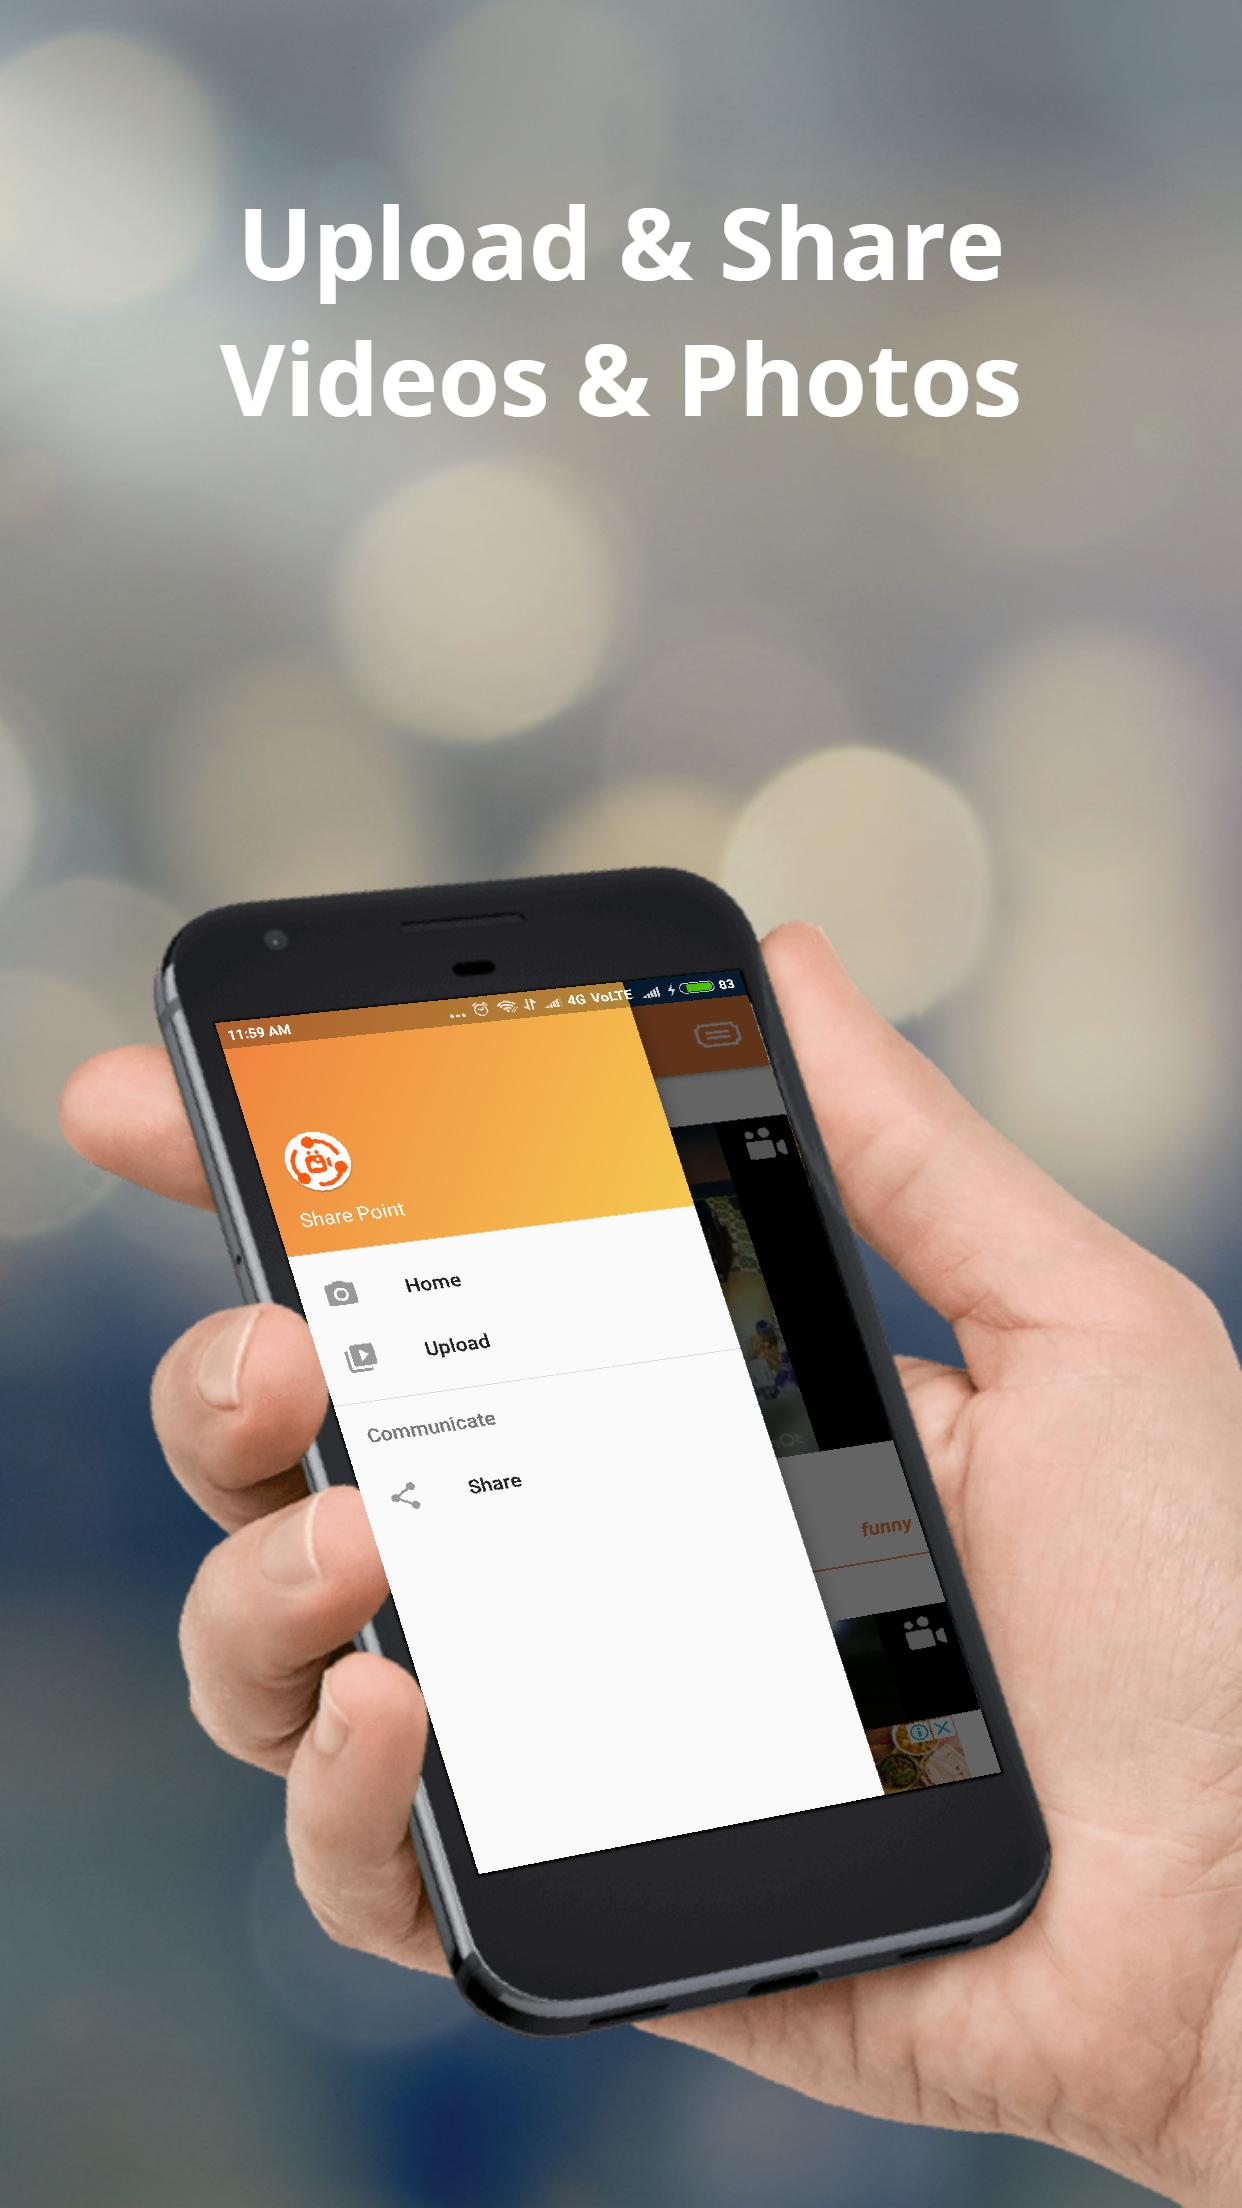 Share Point - Unlimited Video & Photos Sharing App for Android - APK